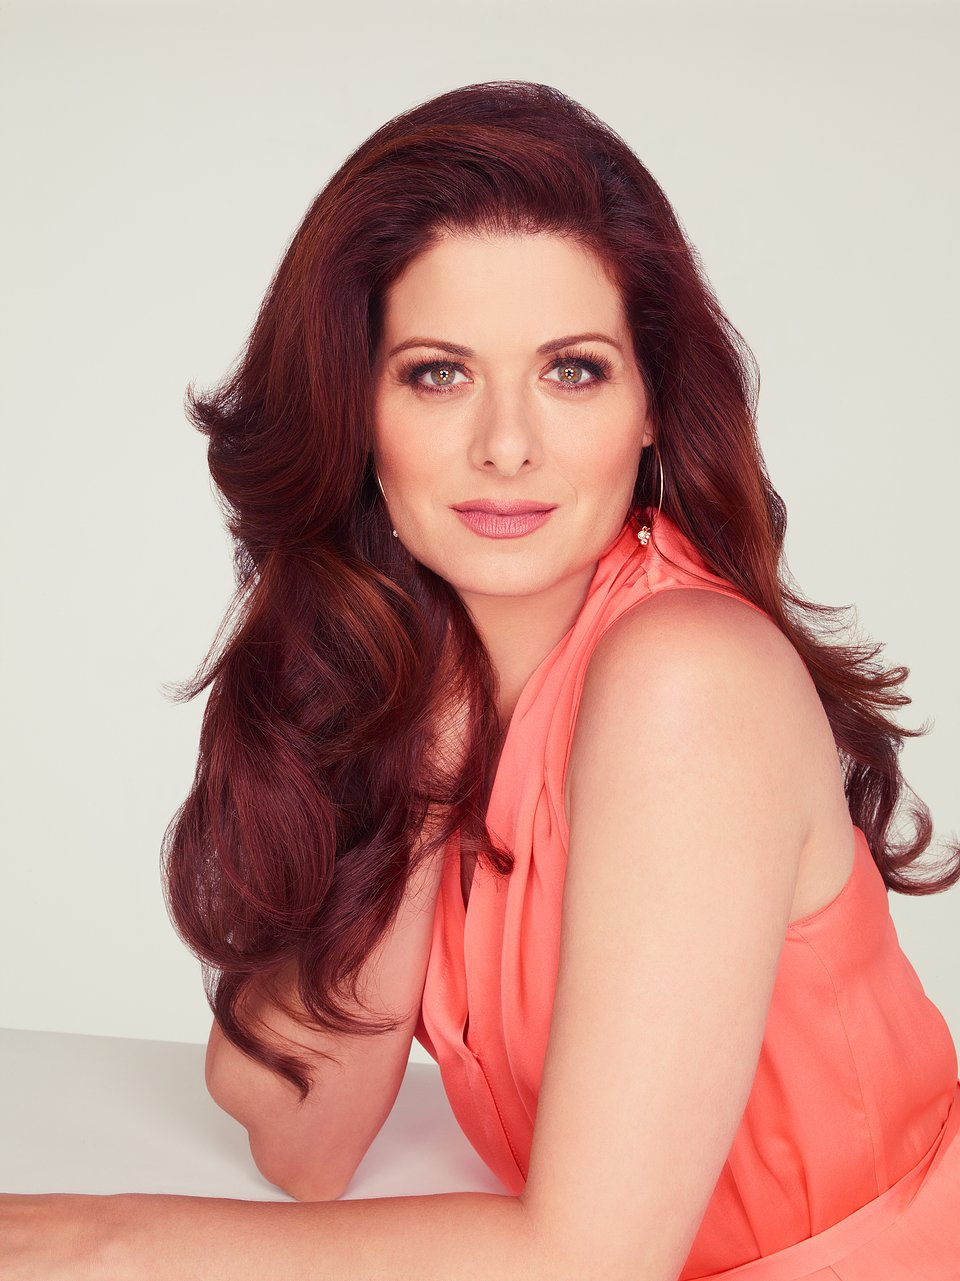 Actress Debra Messing will appear in the National Vote-at-Home Initiative, targeting voters in Michigan with their vote-by-mail procedures and registration deadlines.